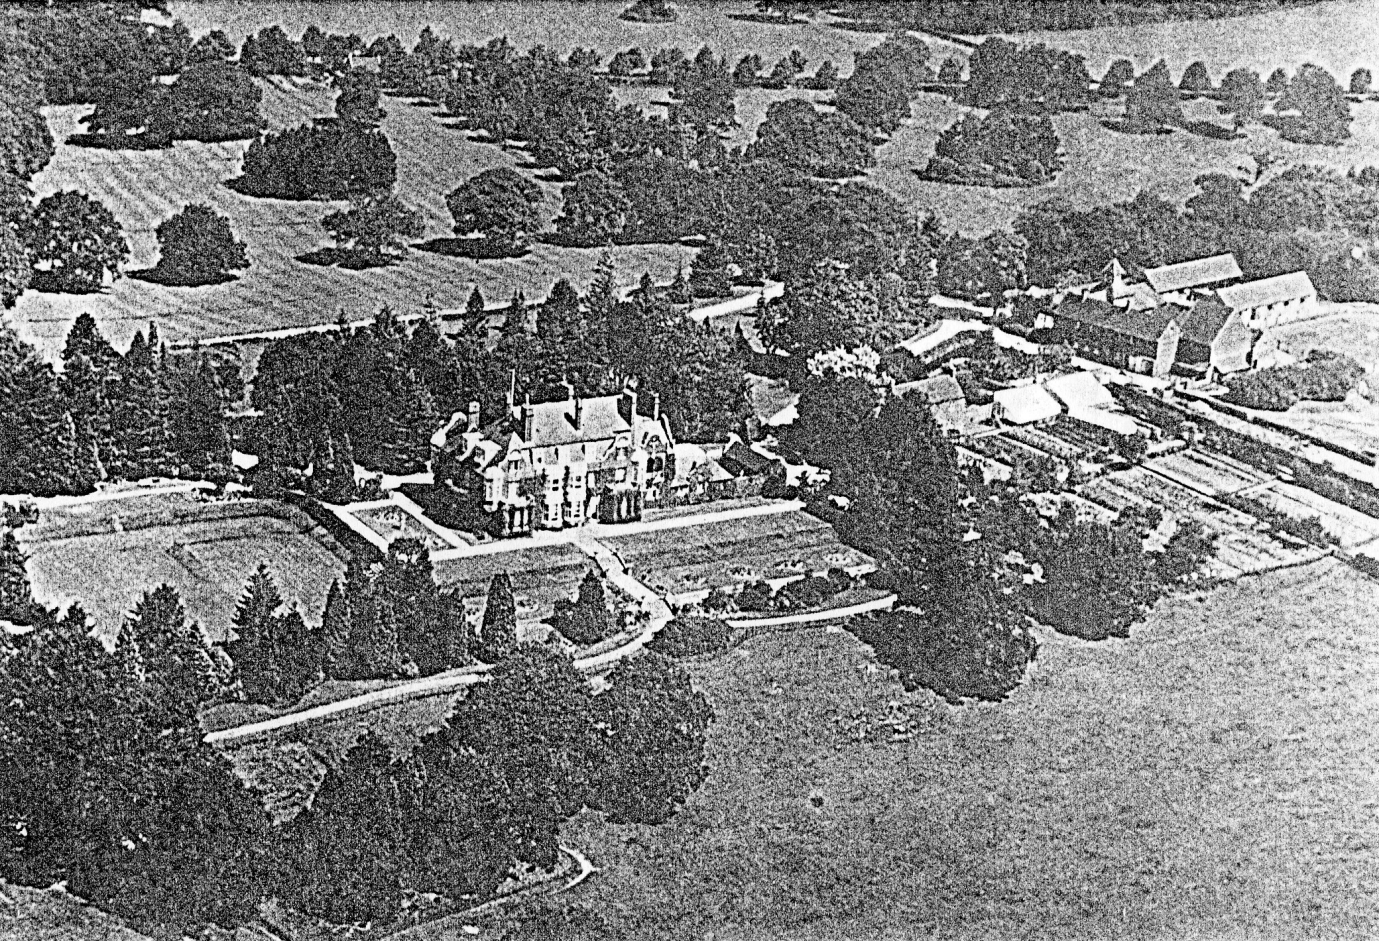 C:\Users\Frank\Pictures\z011 Dunsfold Airfield and crashes and incidents thereon\Pallinghurst House\Photos of House\Pallinghurst 1930 - Copy.png